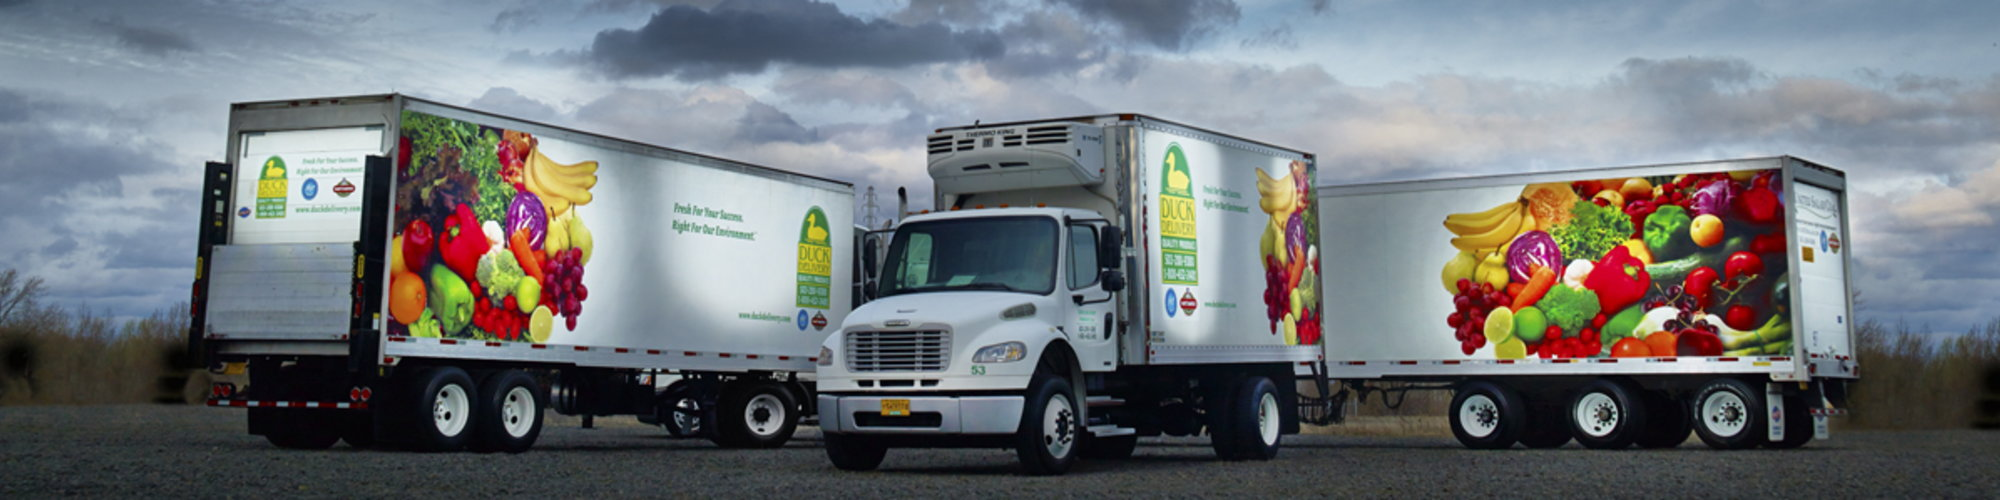 Food Transportation - Refrigerated trucks meant to carry food